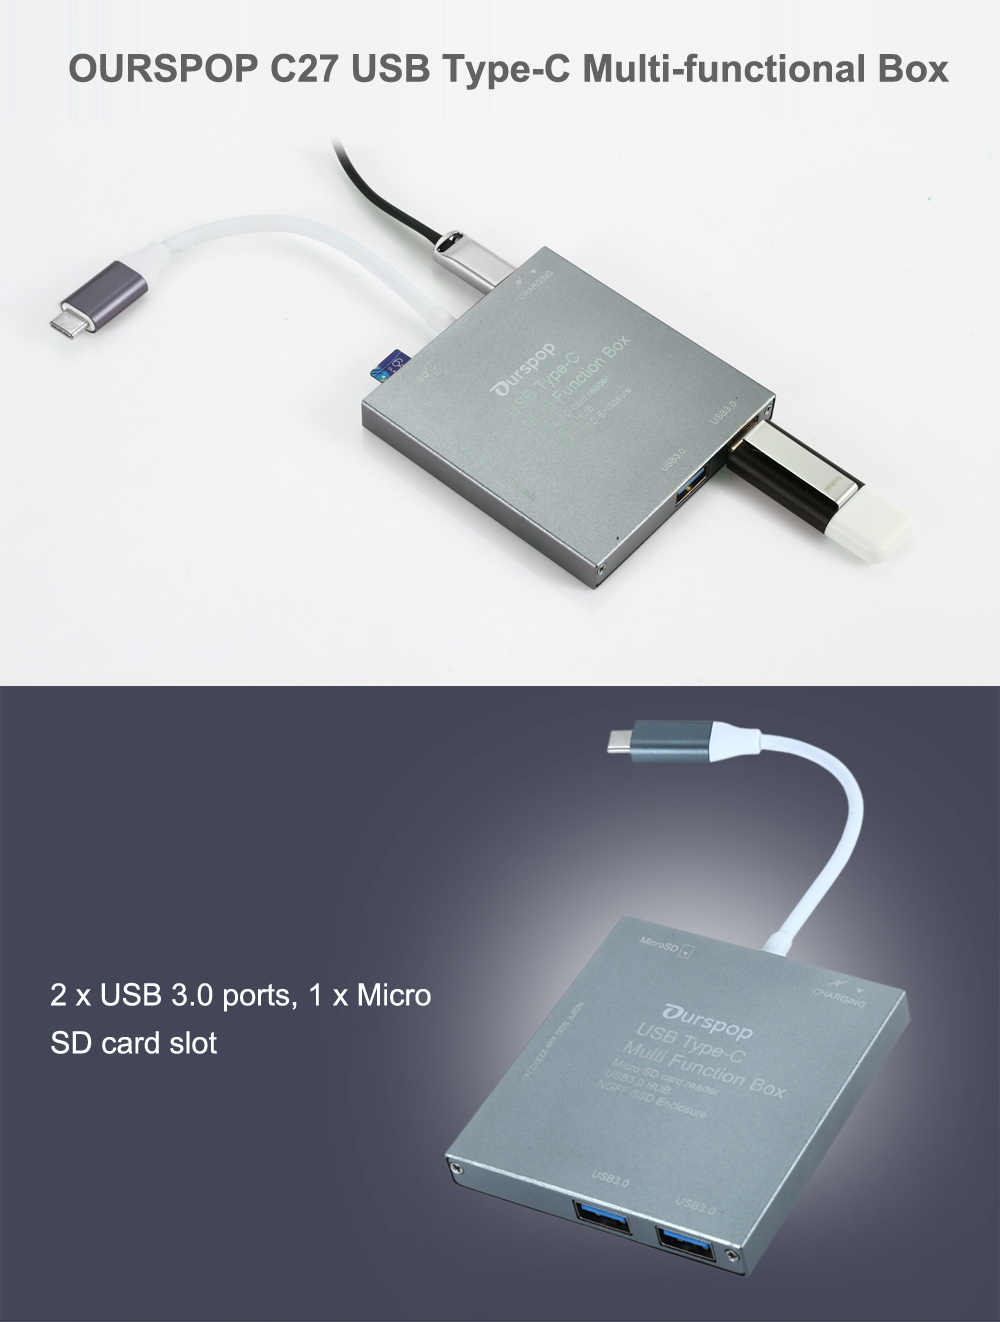 OURSPOP C27 USB Type-C Multi-functional Box with USB 3.0 / Micro SD Card Slot / M.2 NGFF SSD Enclosure